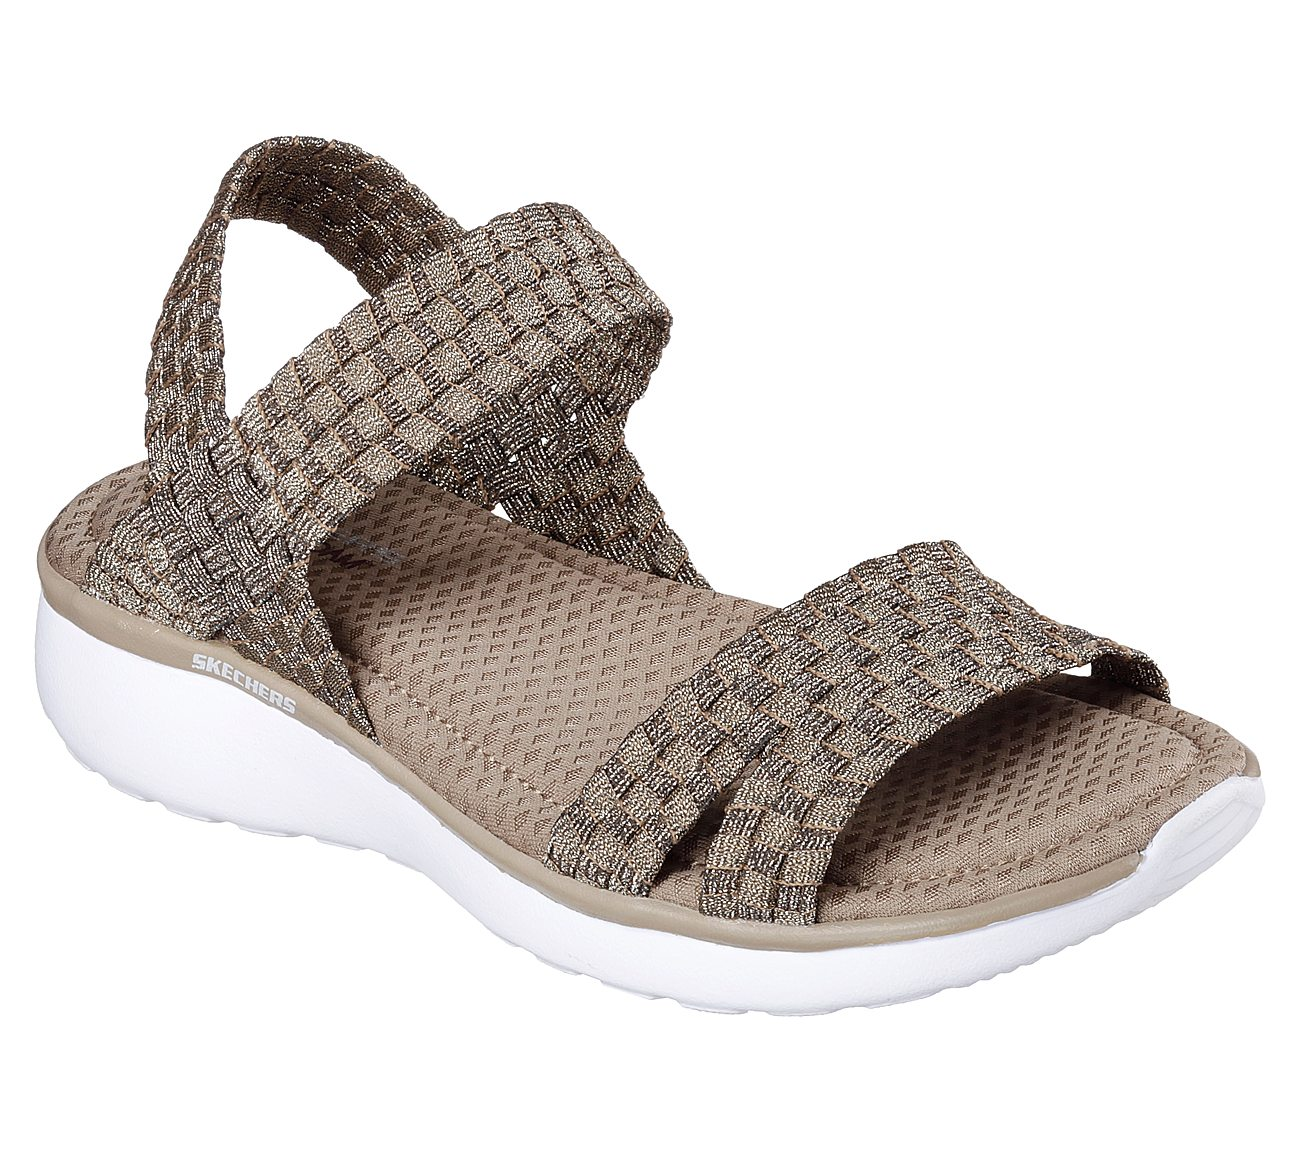 Skechers | Womens Sandals | All the Shoes